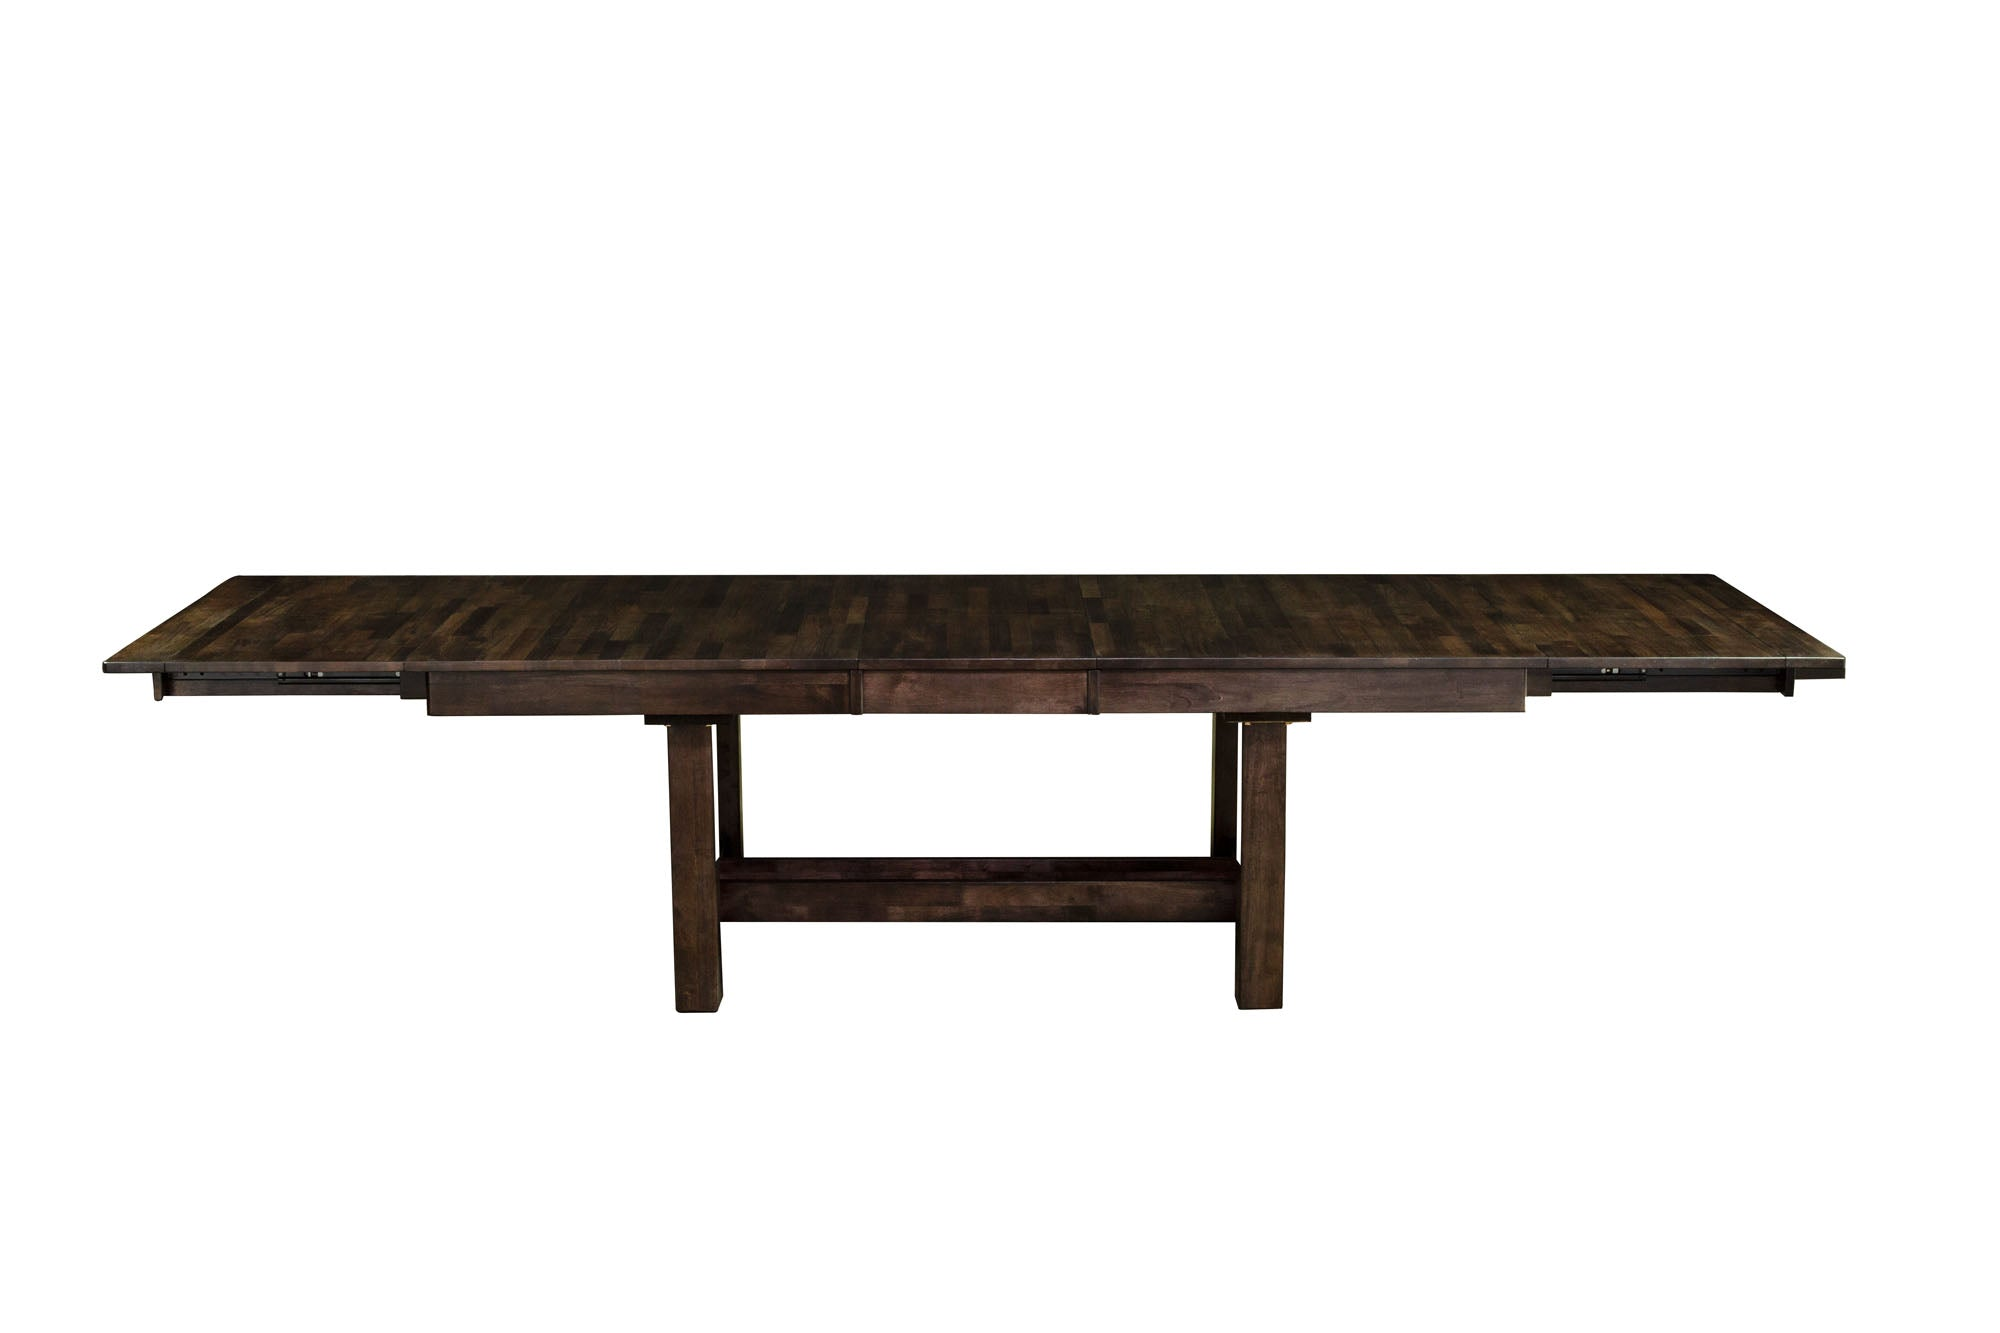 MRPWG6080 Trestle table straight on